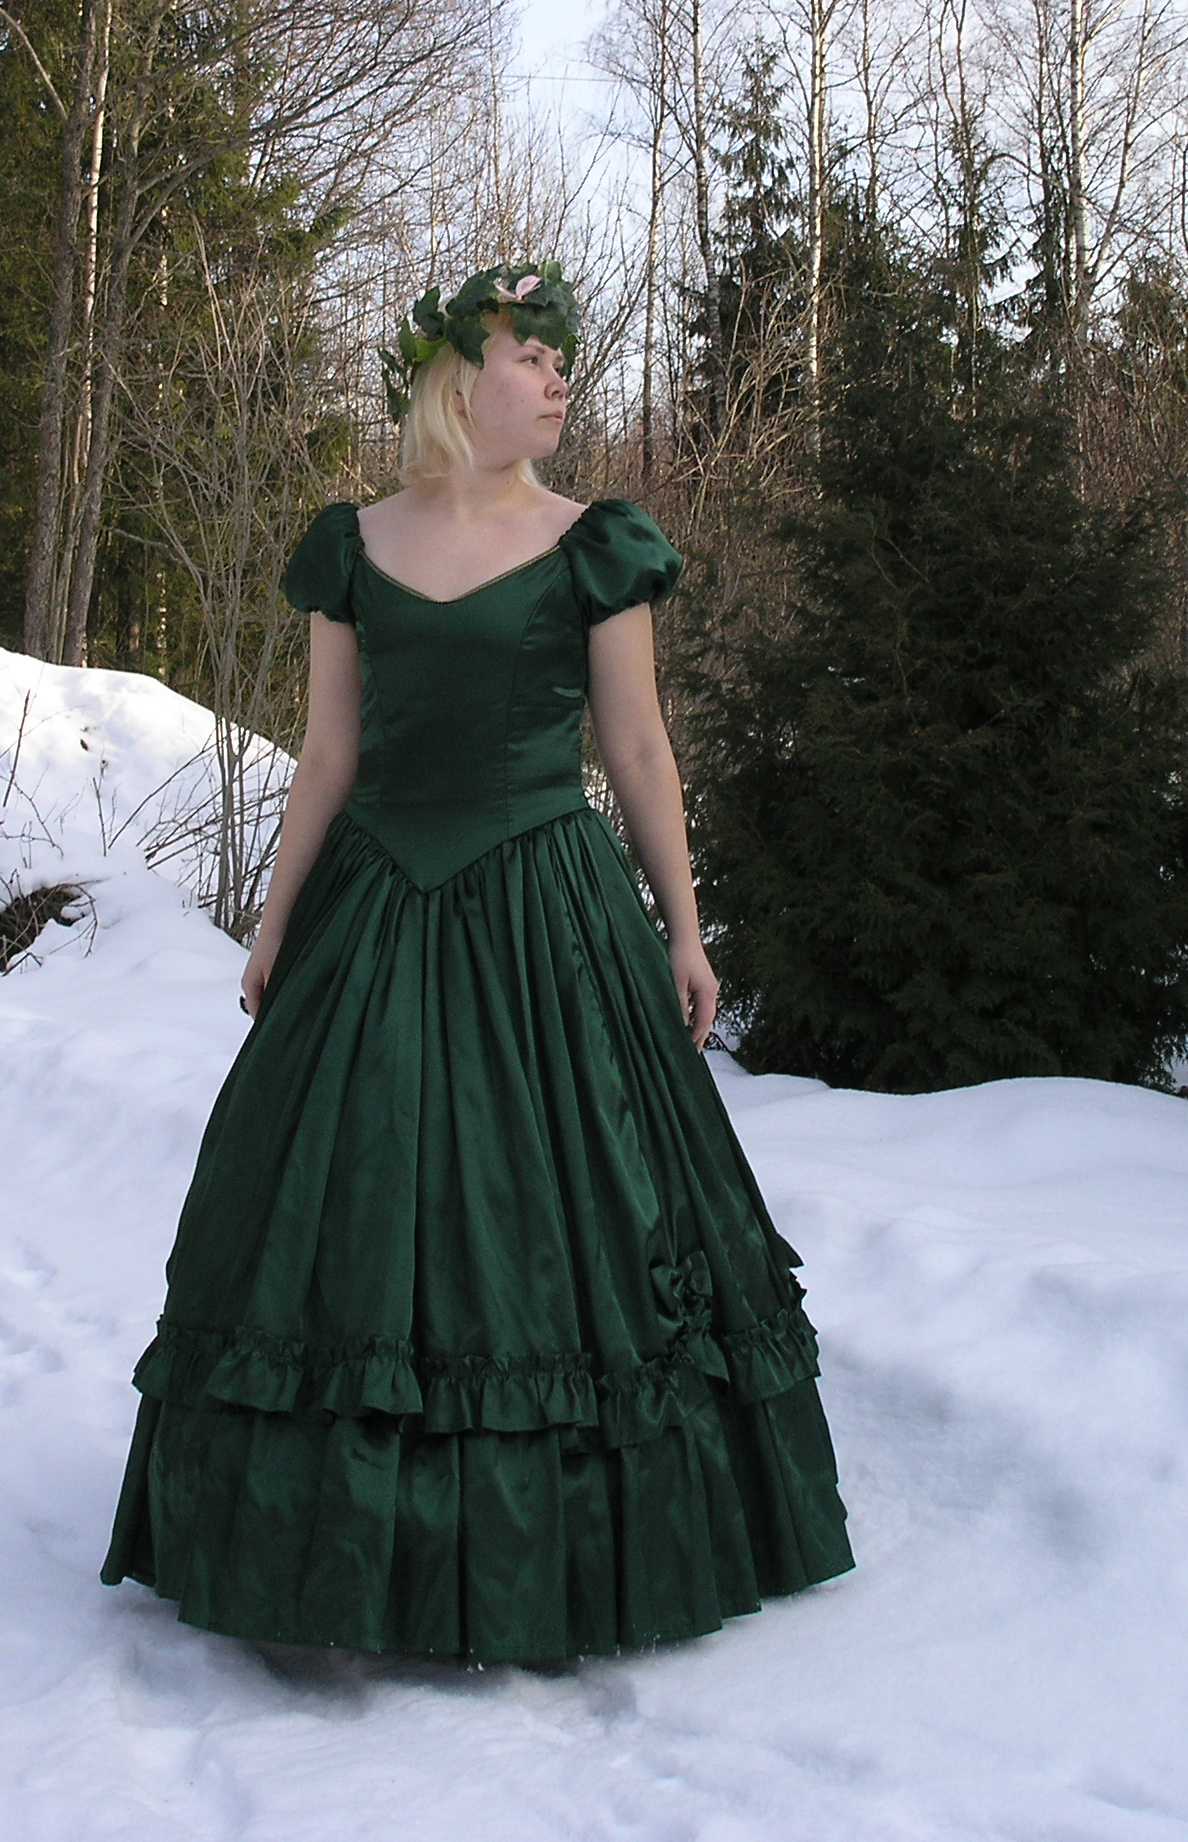 Green Gown 2 by Eirian-stock